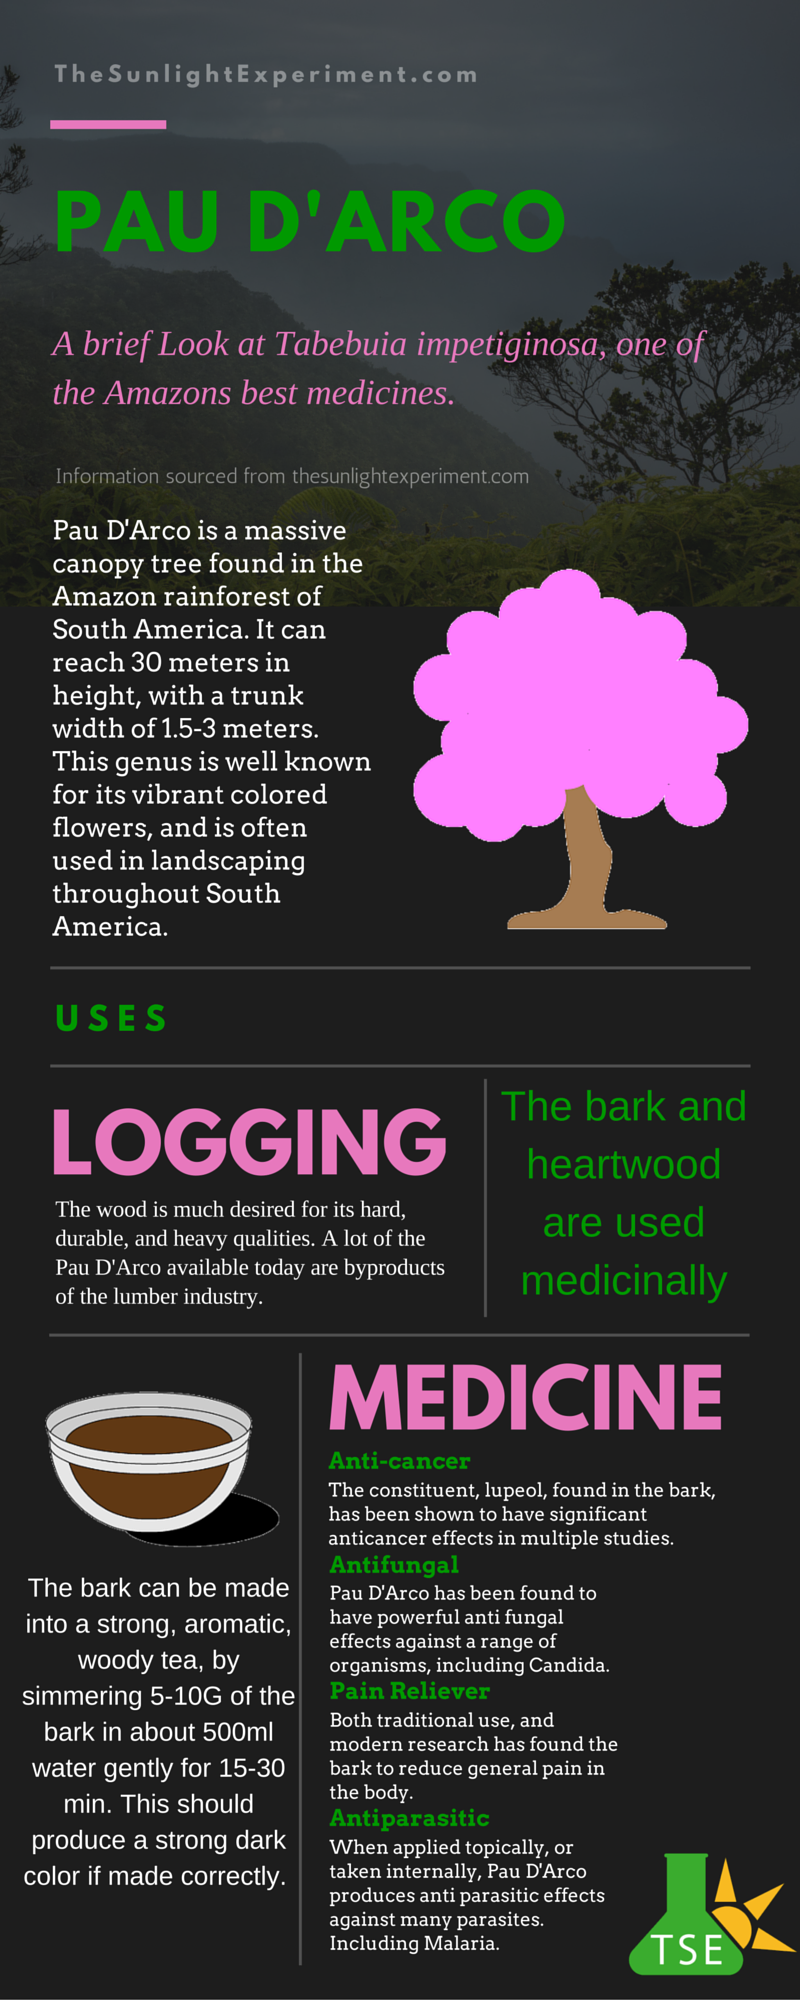 This infographic points out some of the basic characteristics and value of the Pau D'Arco tree. This infographic has been very popular on pinterest.